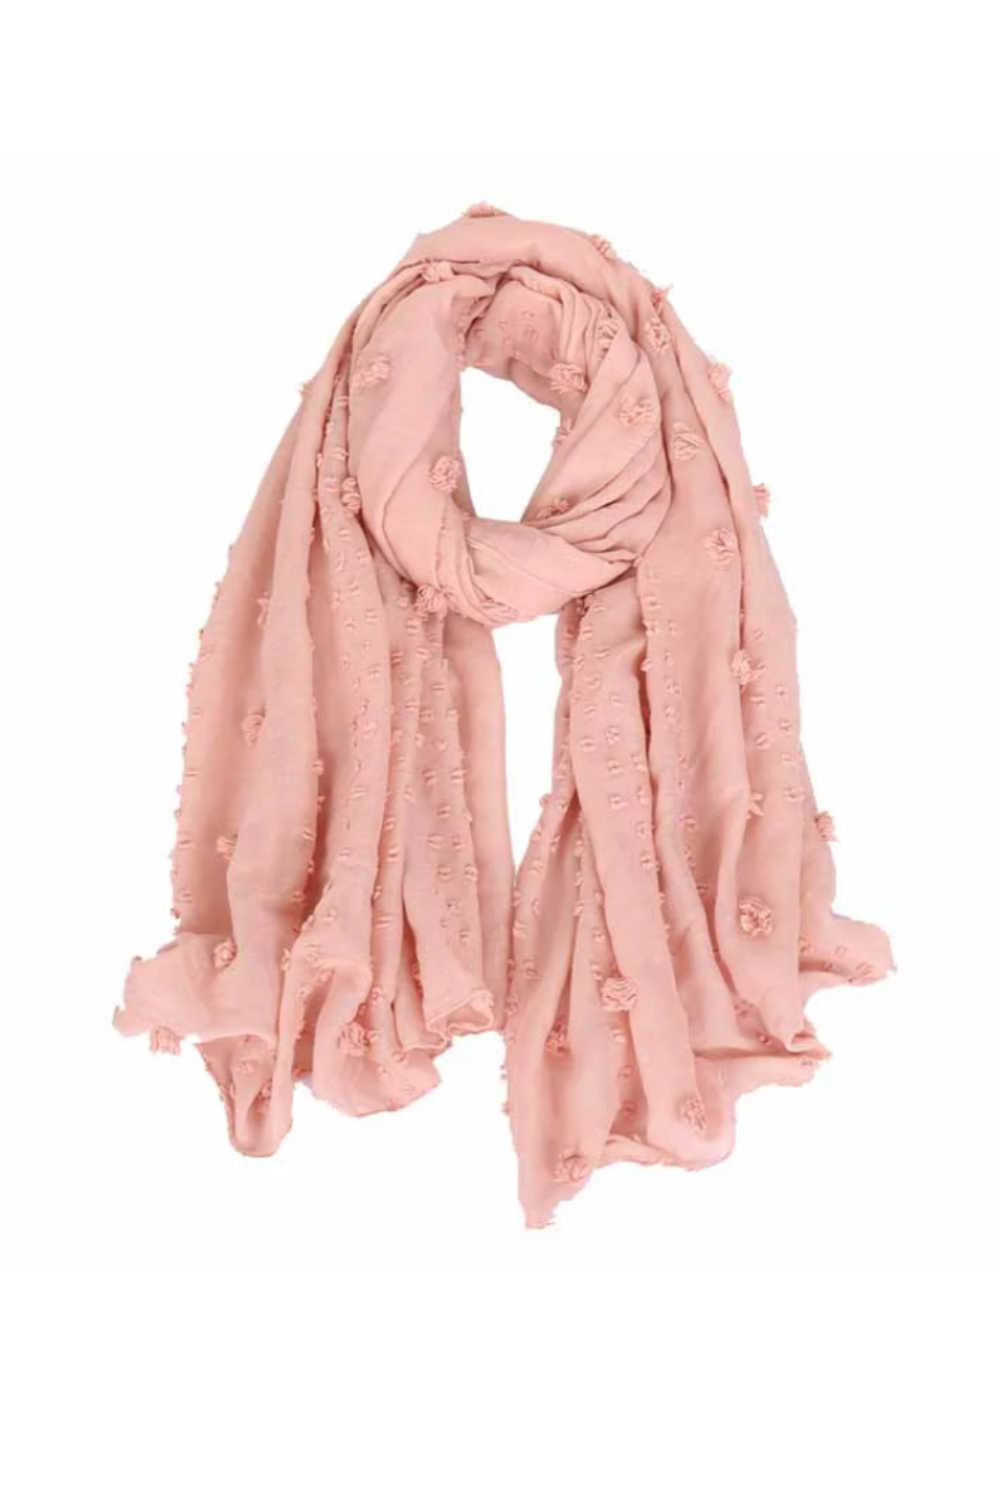 scarf-blush-pink-large-size